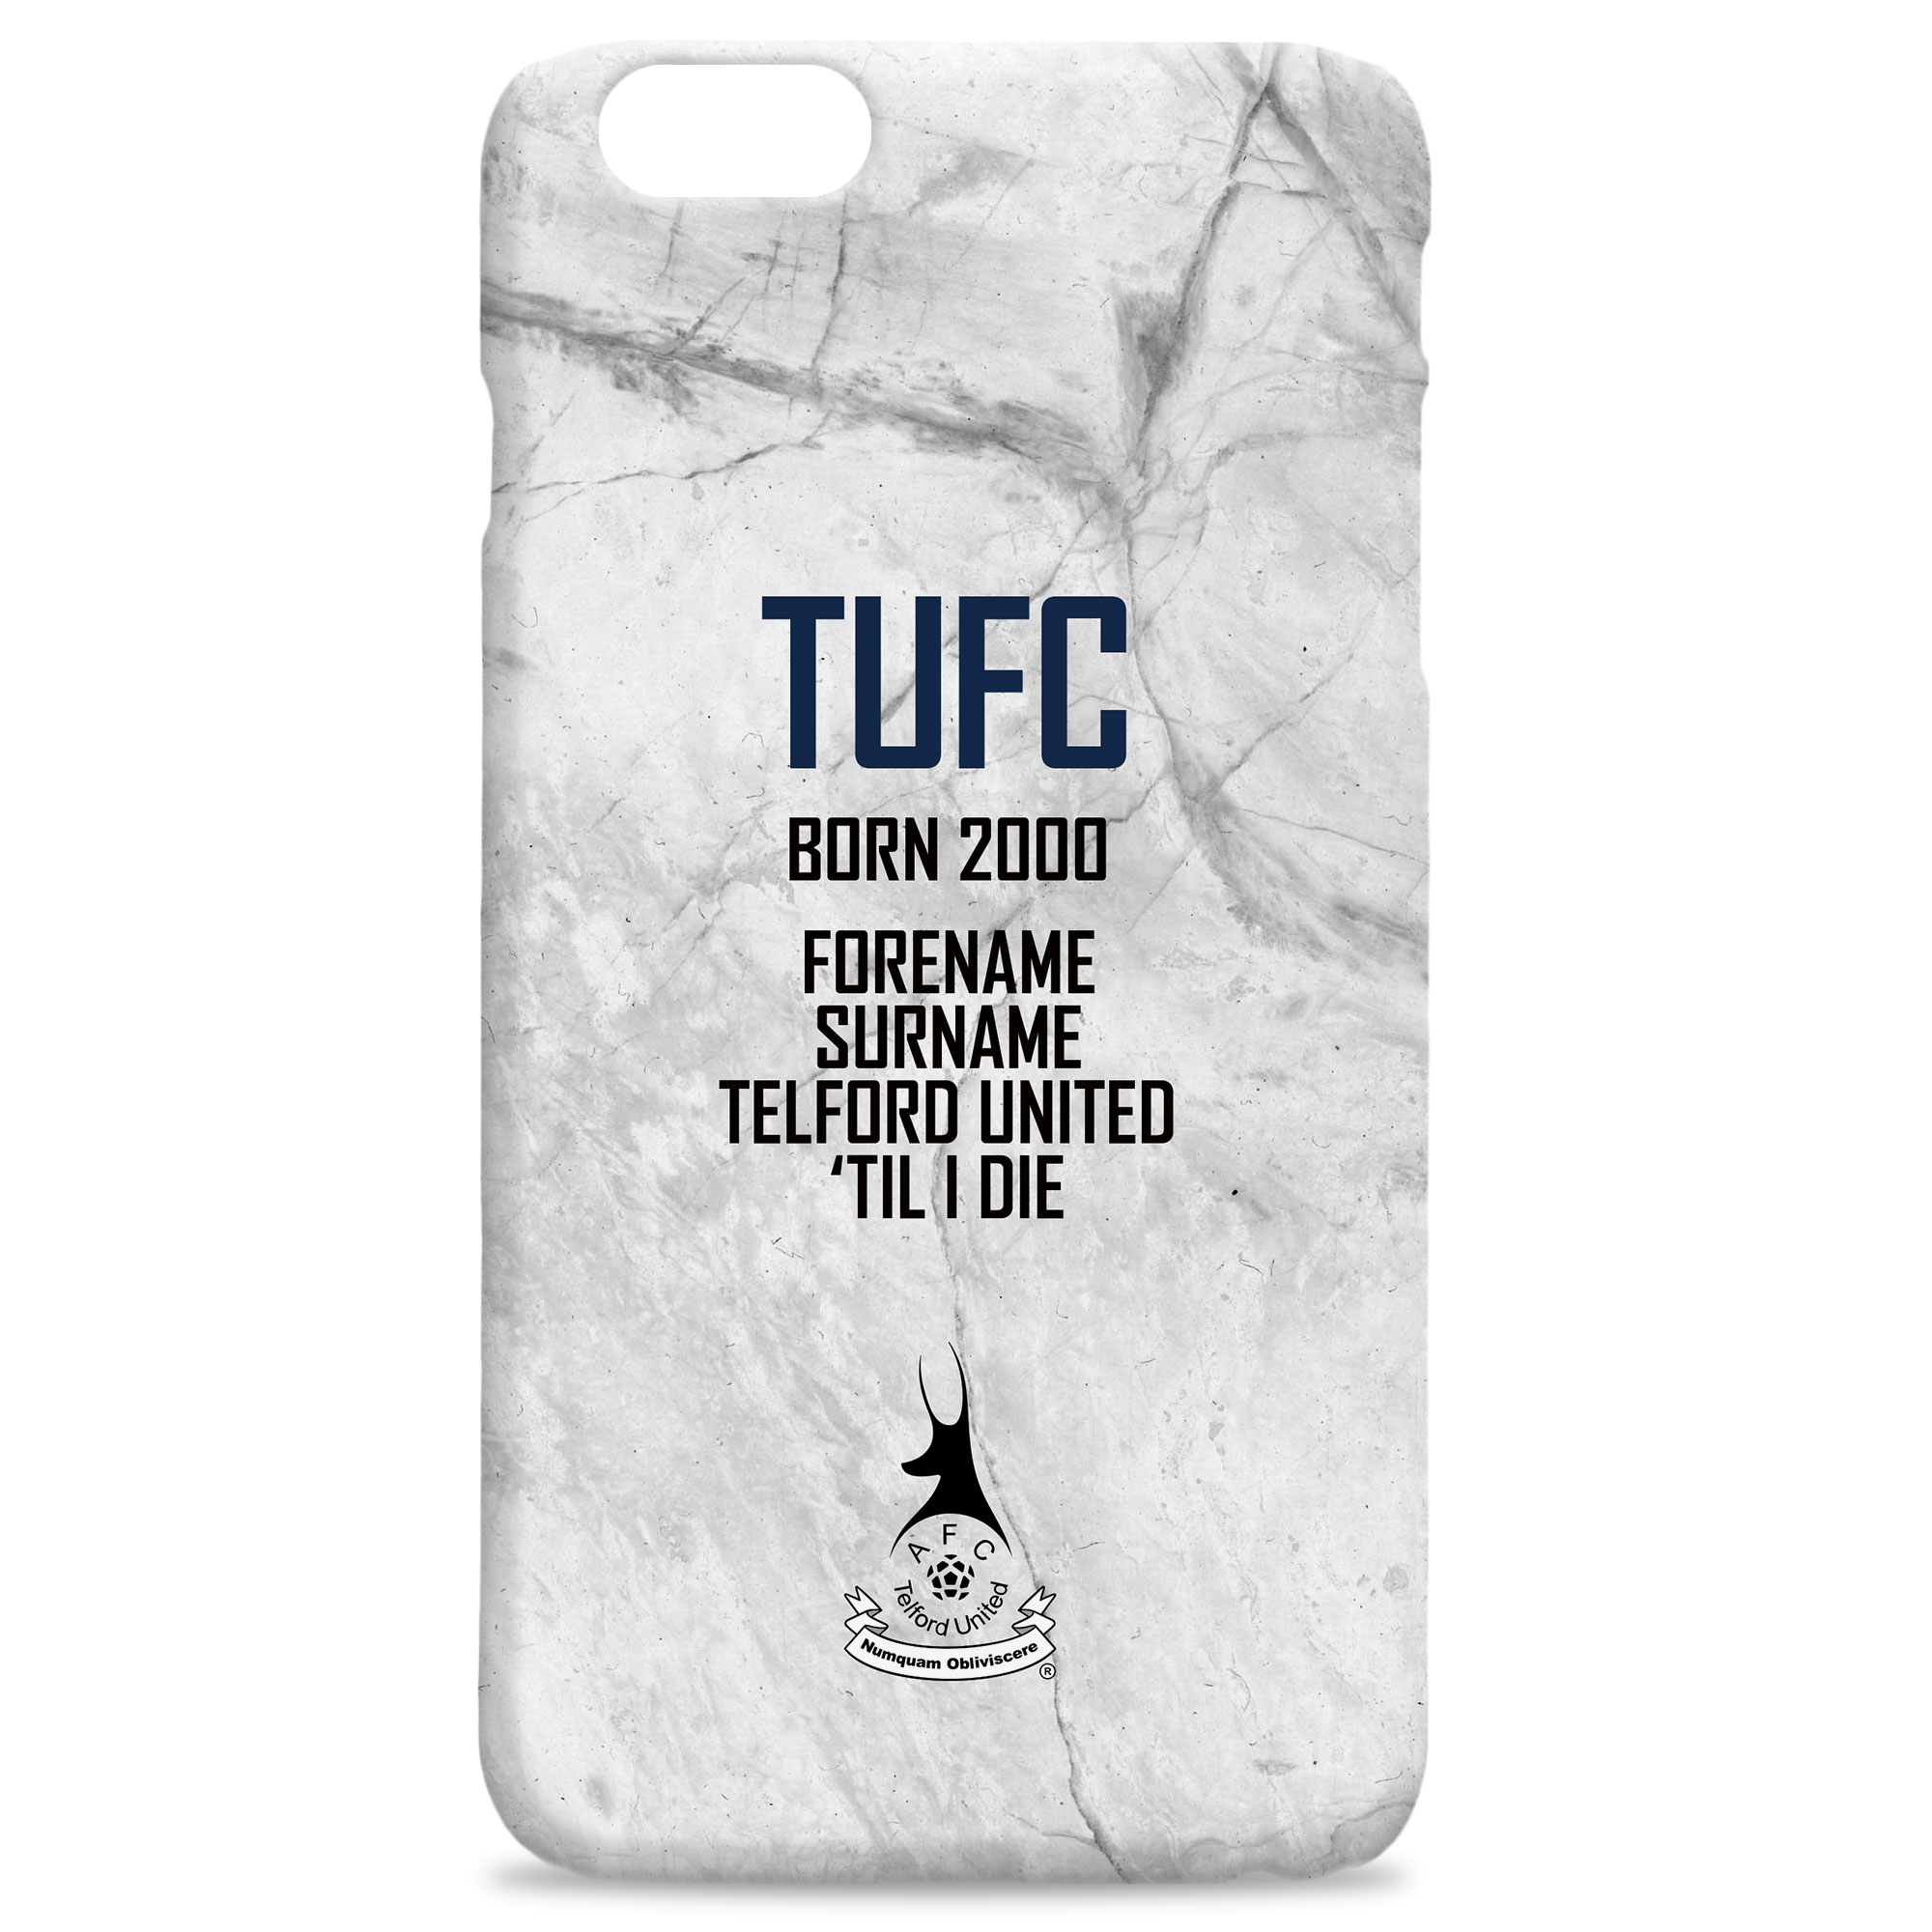 AFC Telford United 'Til I Die Hard Back Phone Case